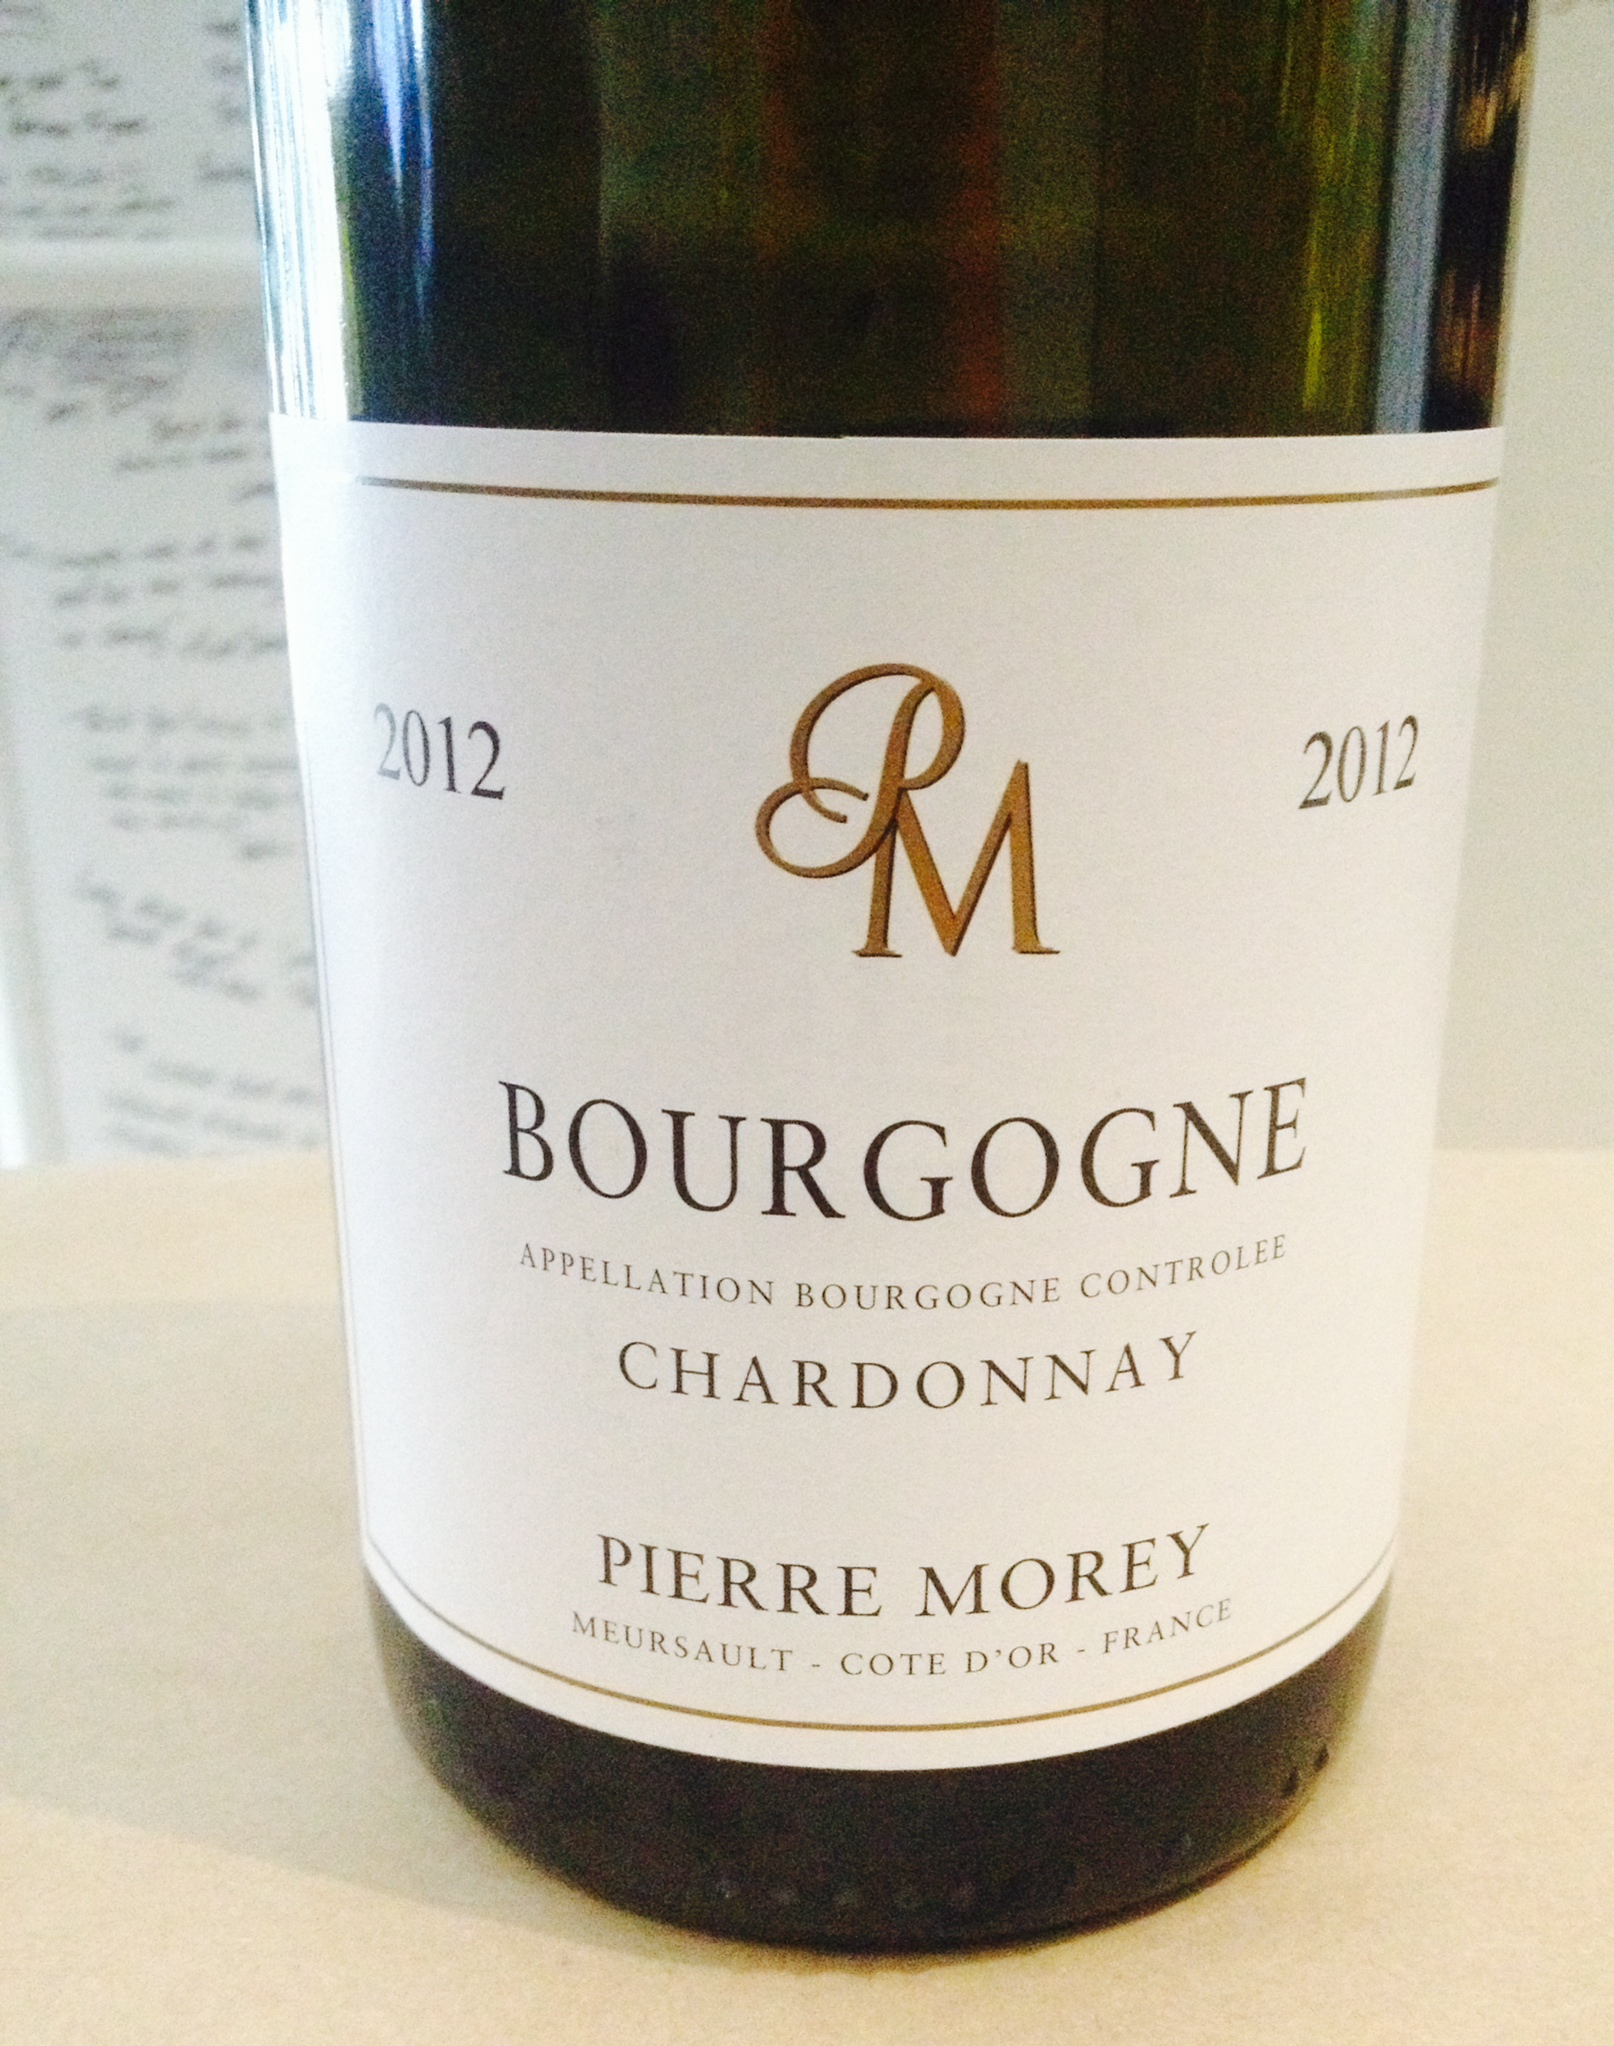 Pierre Bourgogne Brunswick East Wine Store And Bar Augdulgence Pierre Morey